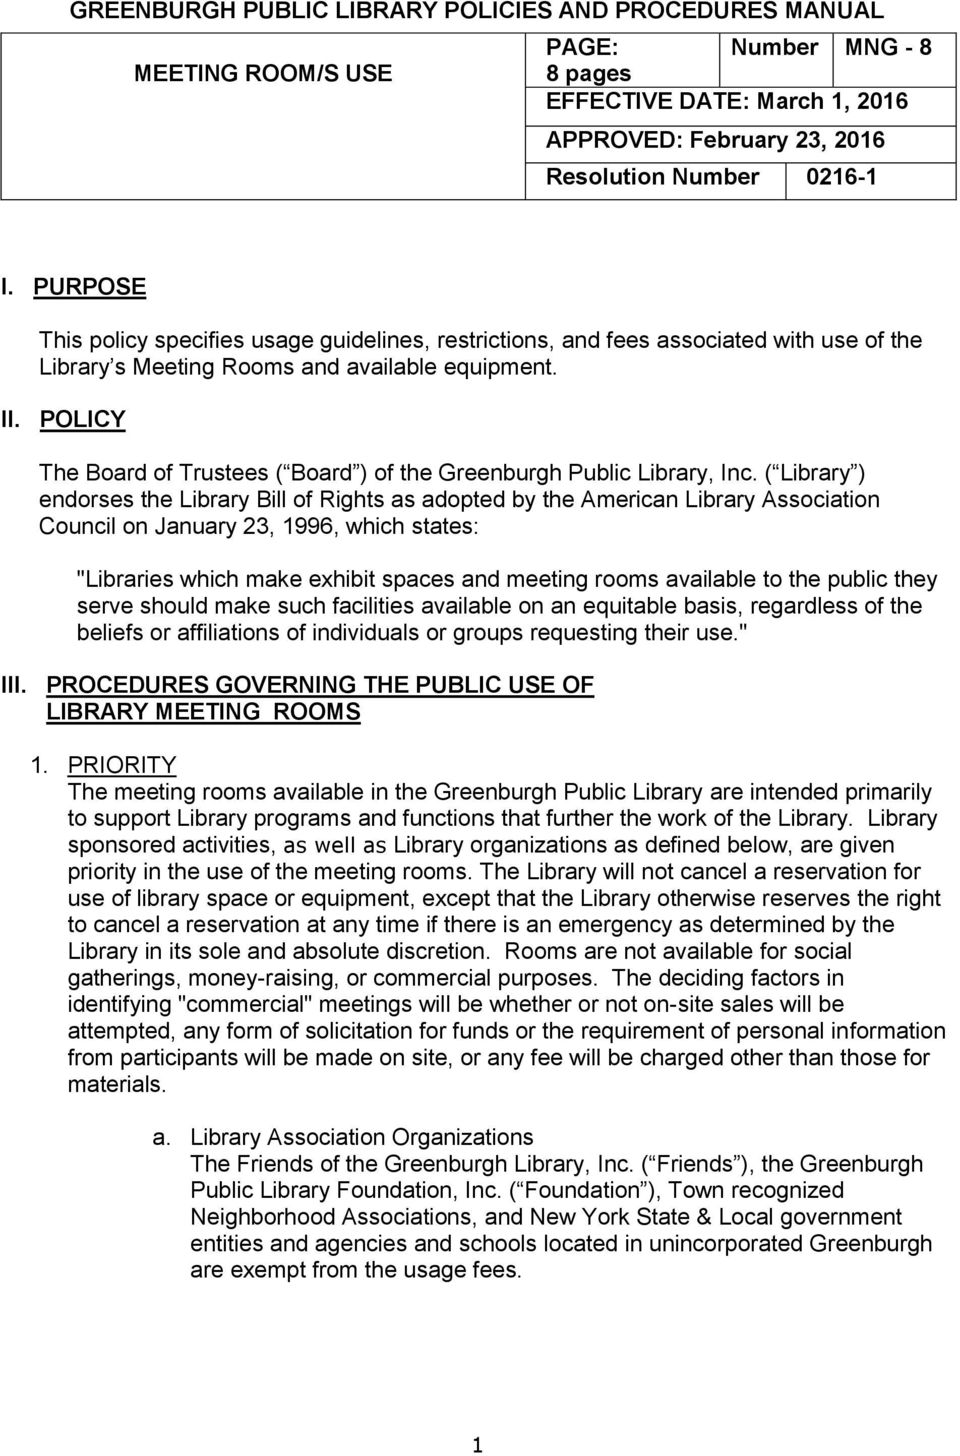 This policy specifies usage guidelines, restrictions, and